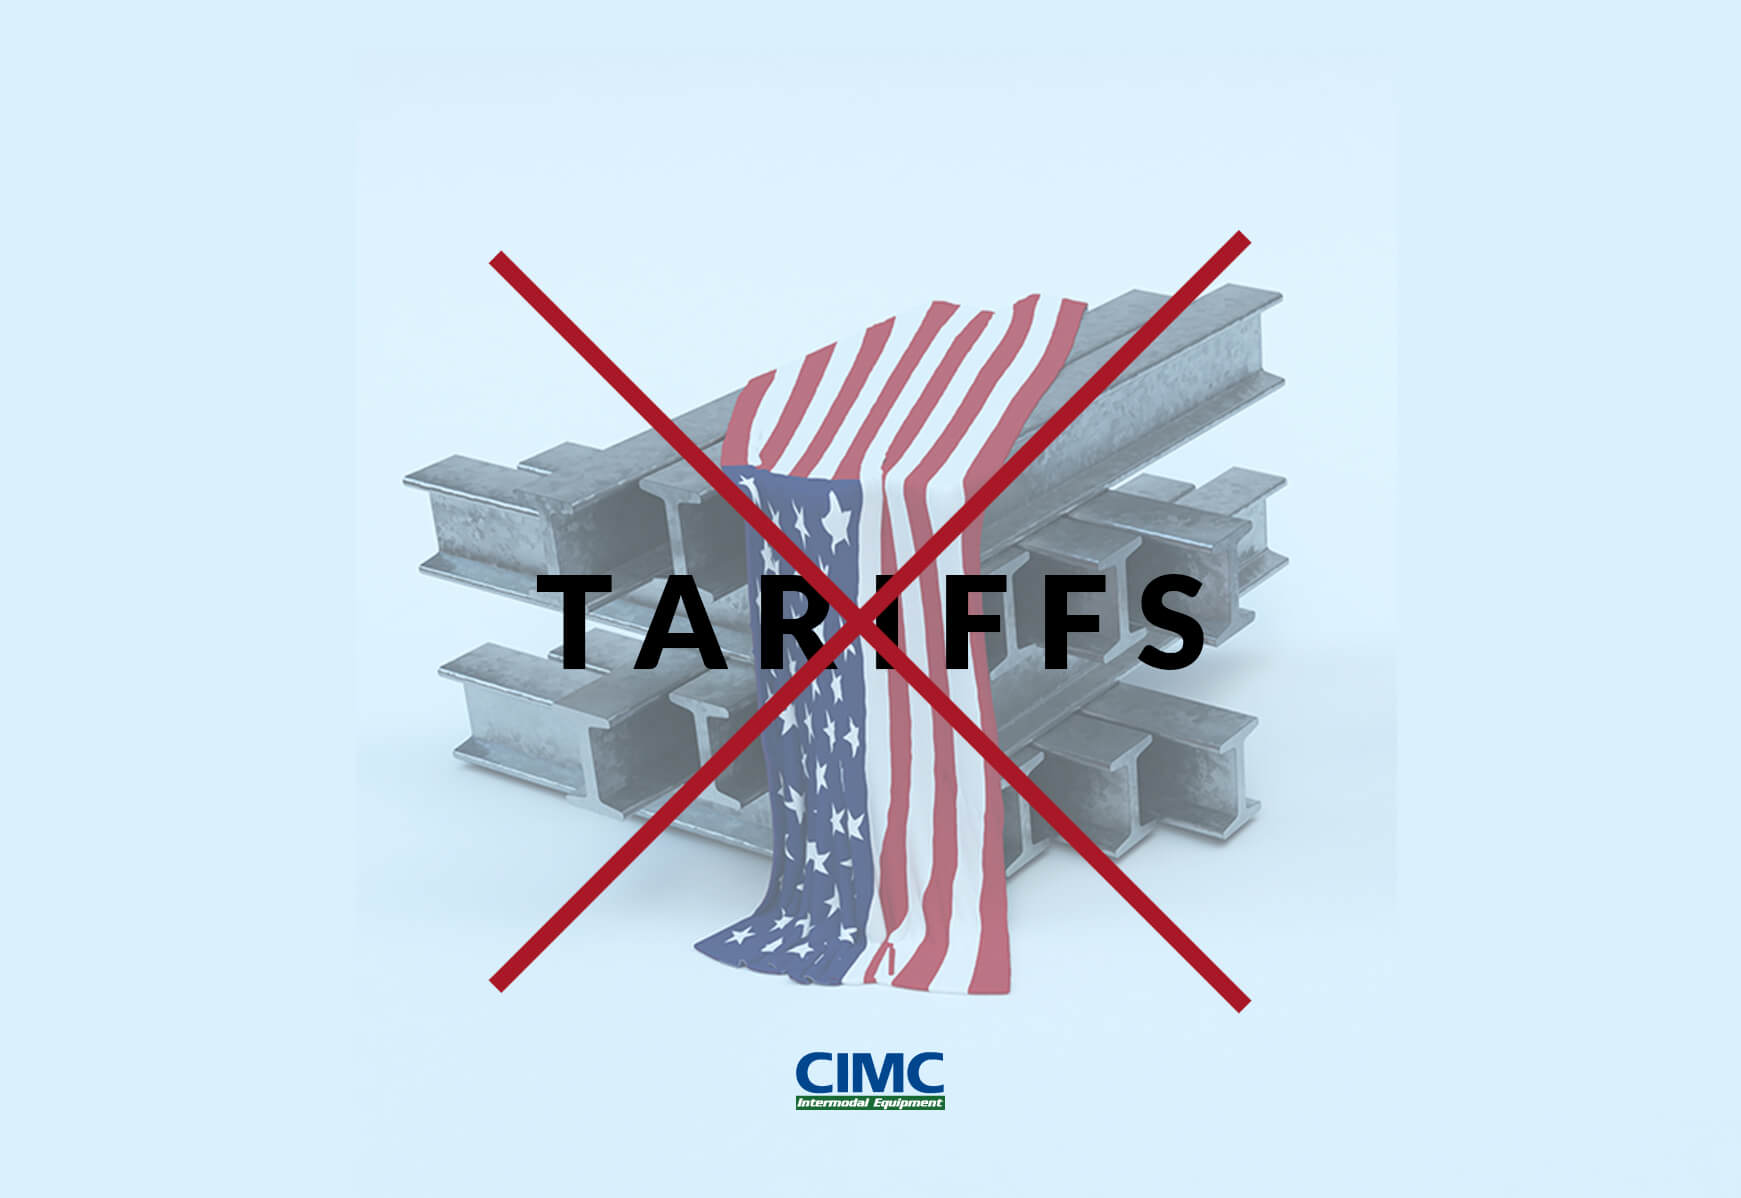 CIMC IE Dispatch: CIMC Says NO to Chassis TARIFFS